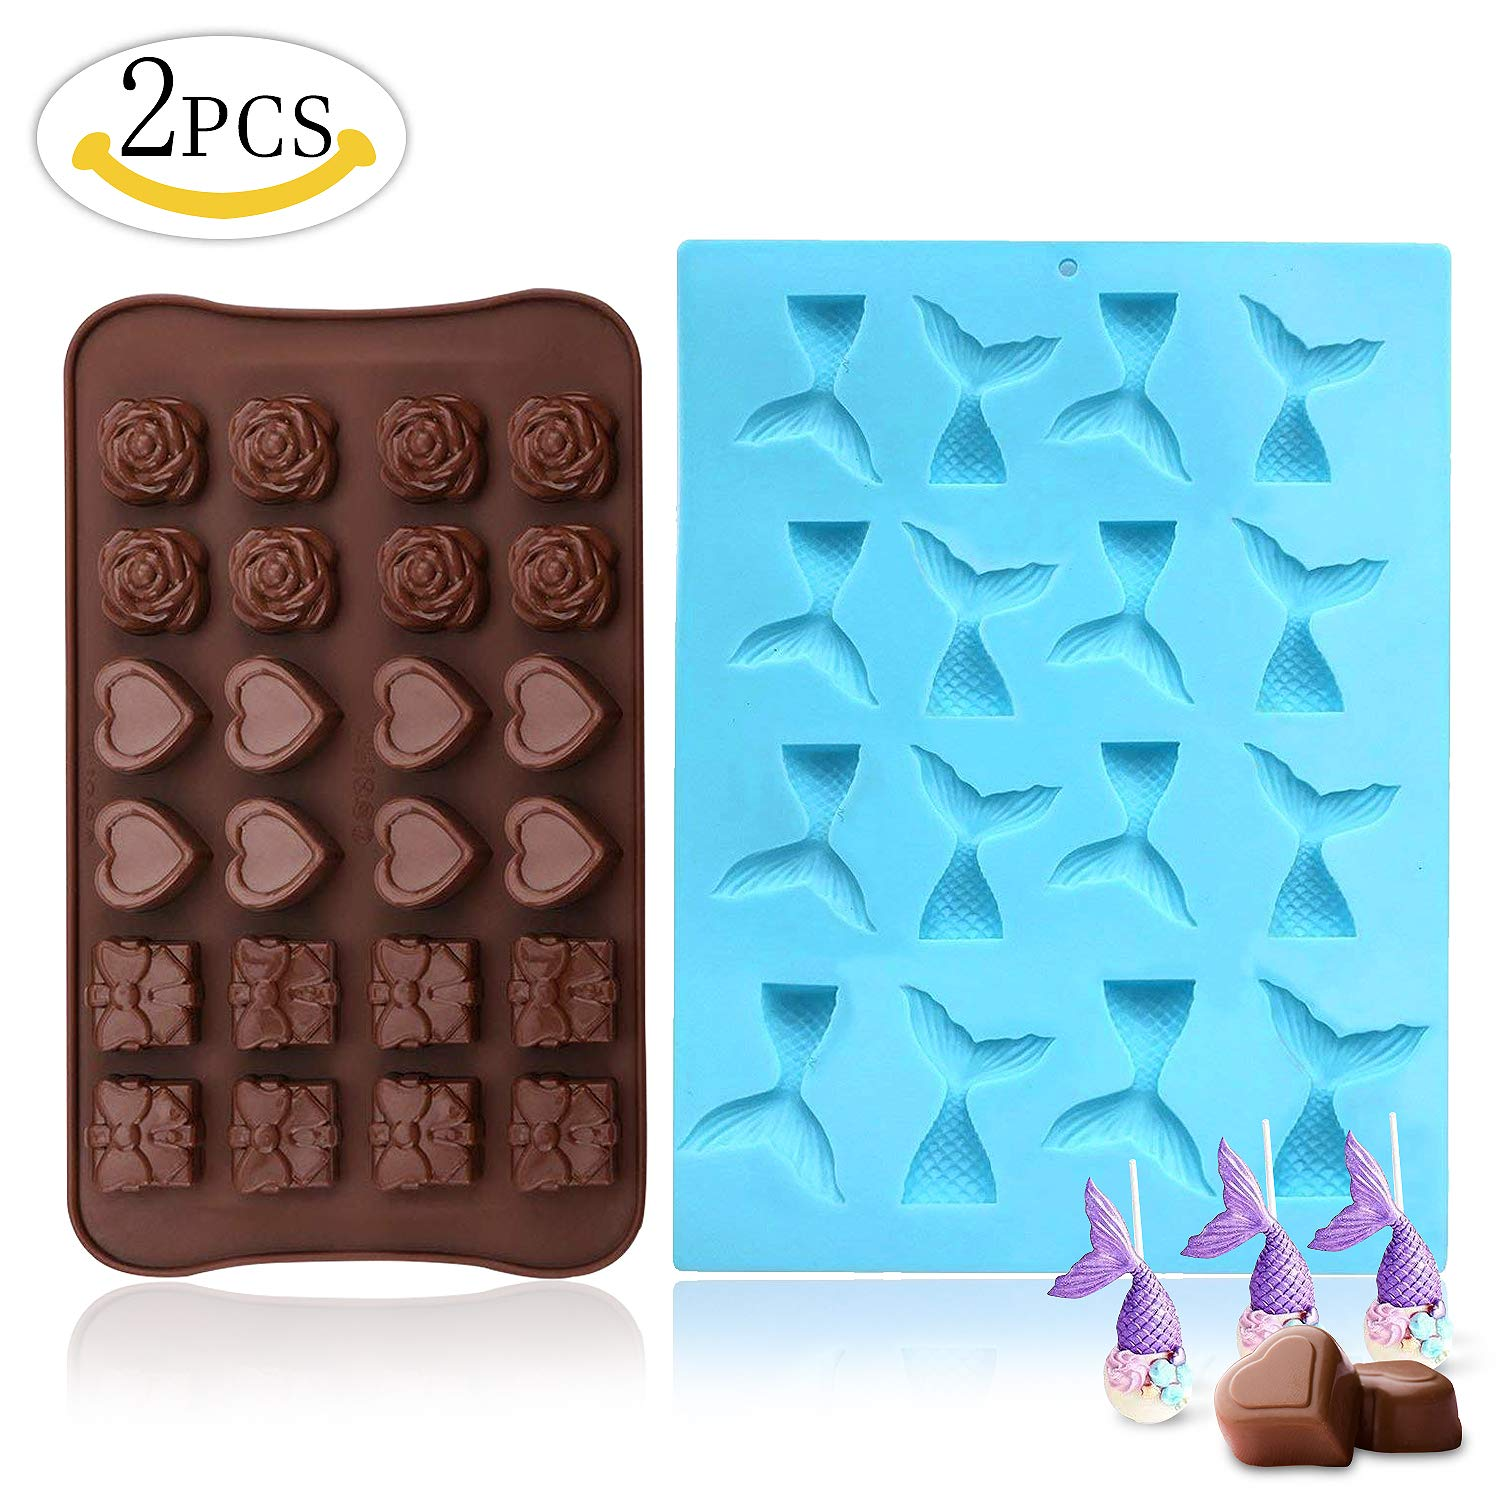 Silicone Chocolate Candy Molds(2 PCS),MMTX 16 Cavity Mermaid Tail and 24 Cavity Rose Flowers, Gift Box and Heart Shape Mold for Cake Decor Chocolate Candy DIY Baking